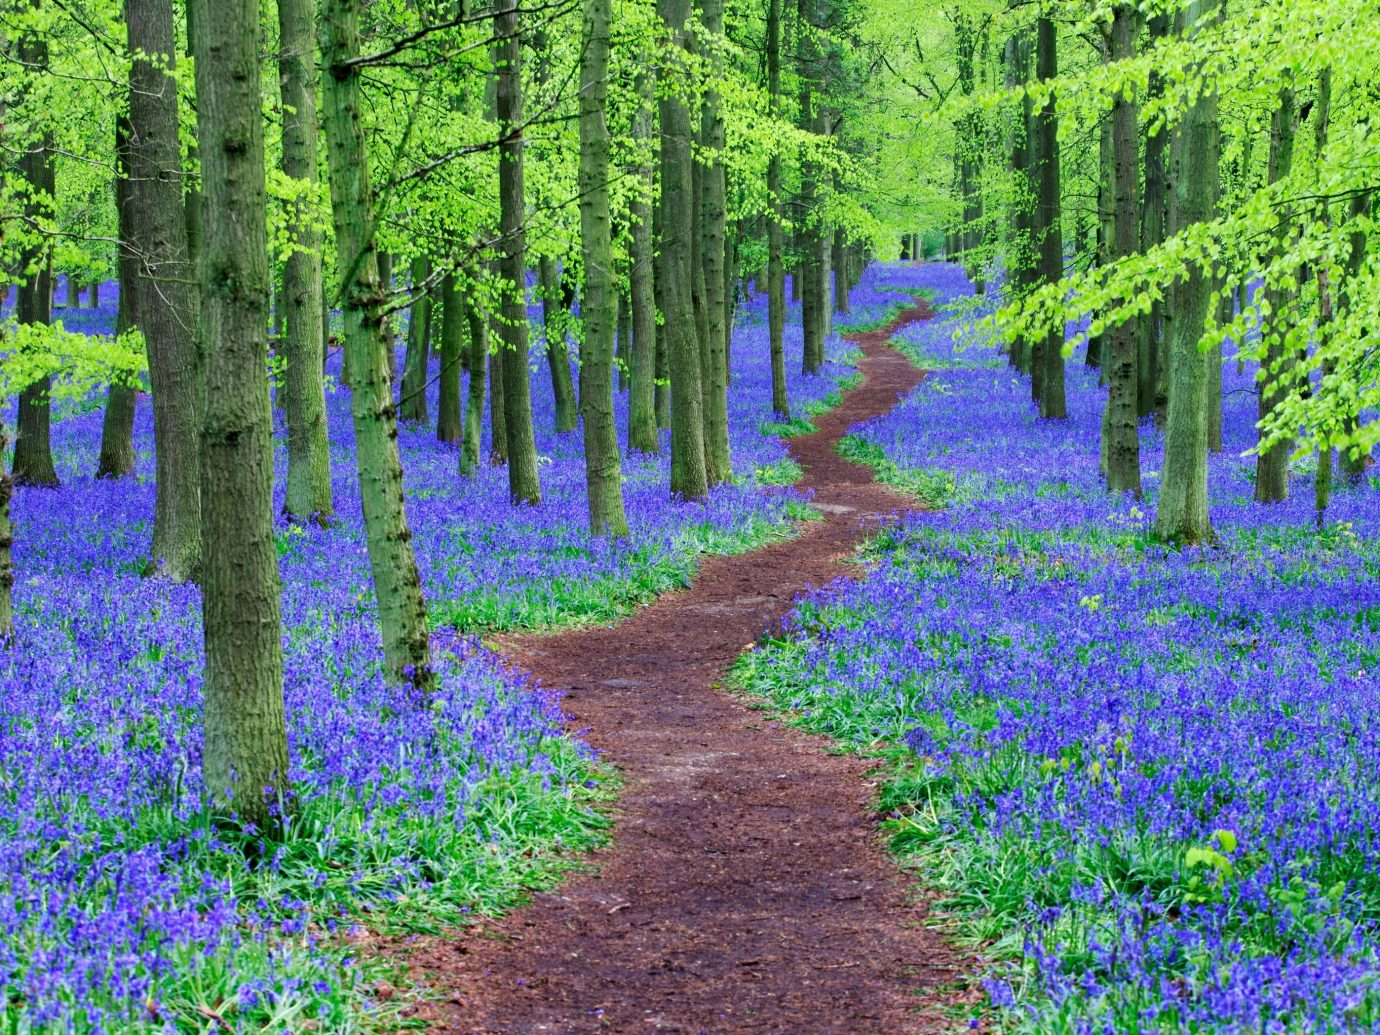 Trip Ideas tree outdoor grass habitat plant Forest woodland flower natural environment ecosystem land plant path biome woody plant wood meadow flowering plant lupin wildflower temperate coniferous forest wooded shrub area surrounded lush